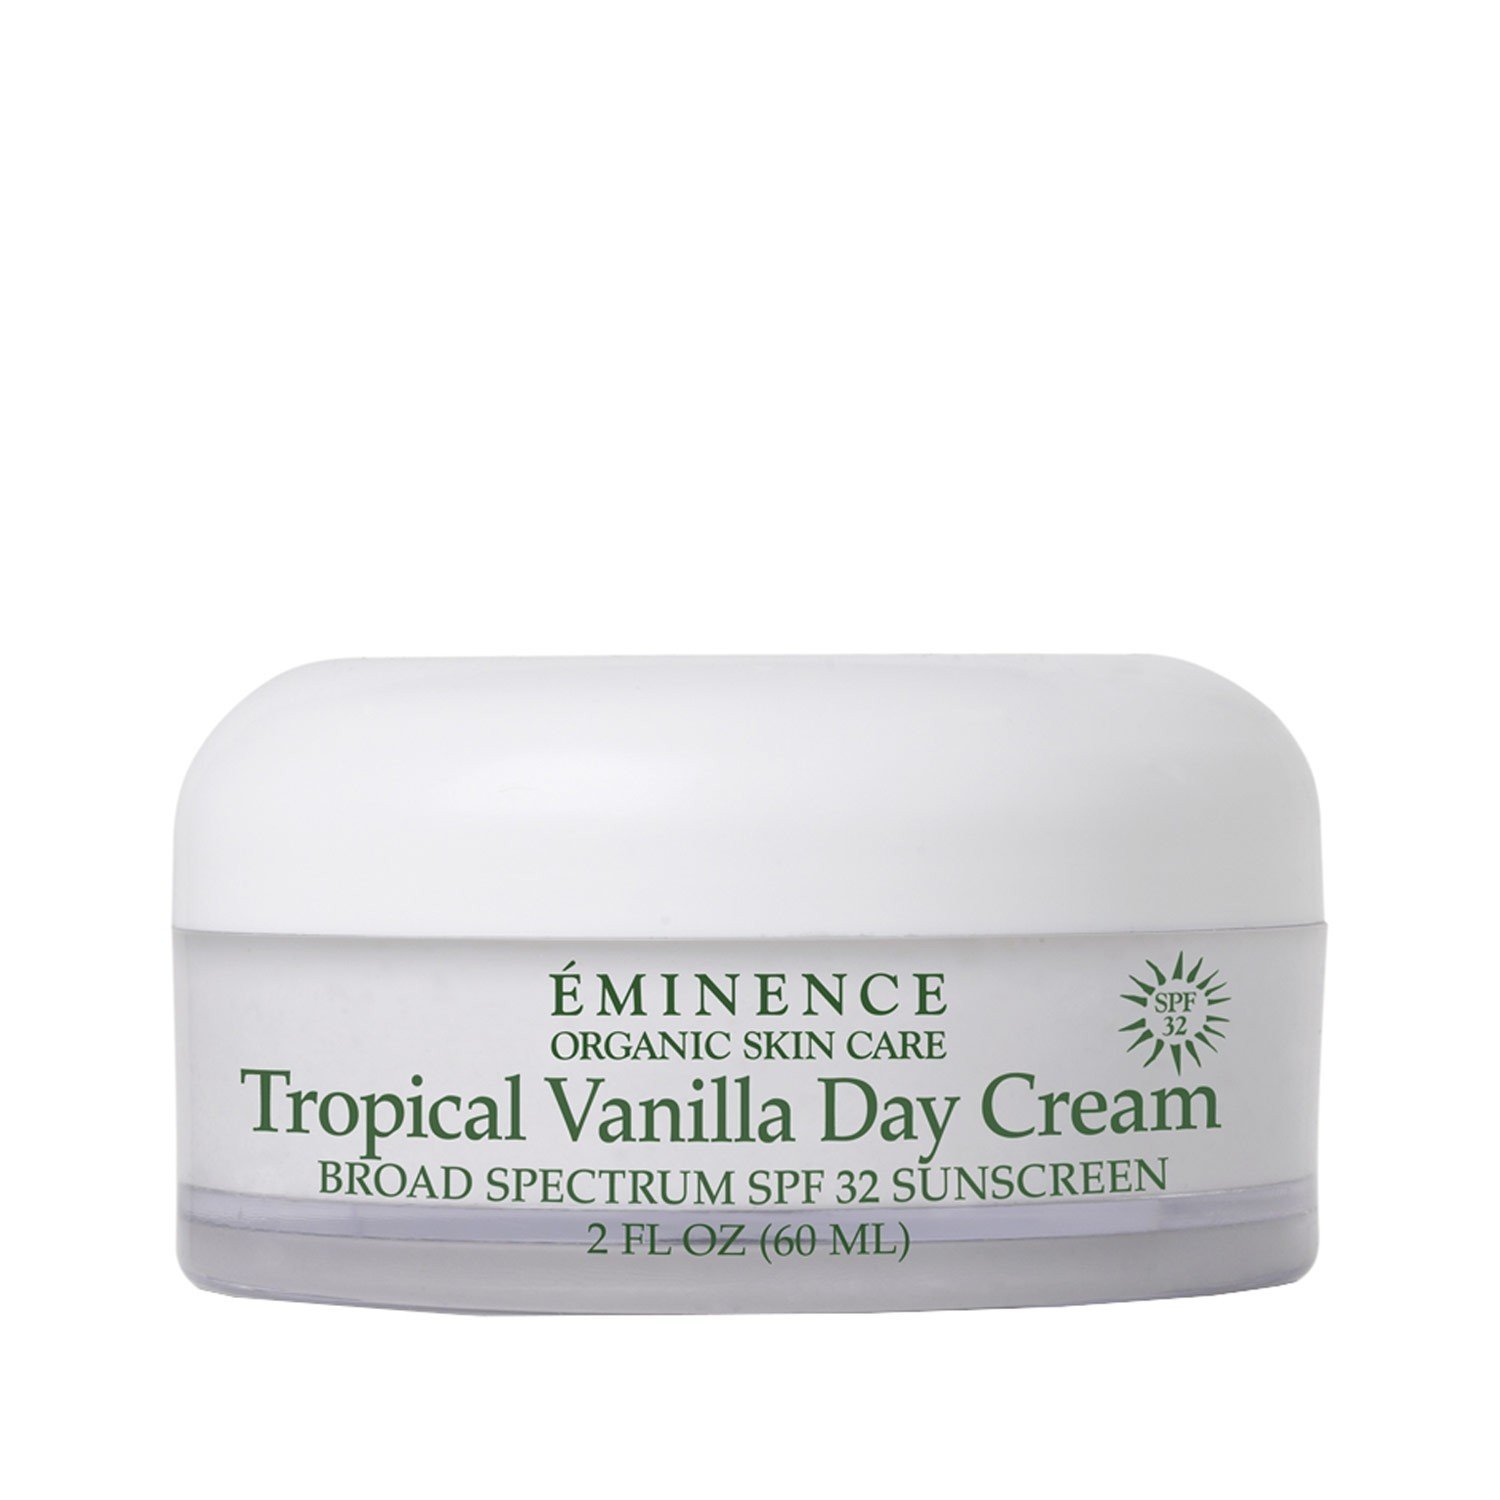 Tropical Vanilla Day Cream  ZI3W33CWRIFT74E6B7UE4FN5